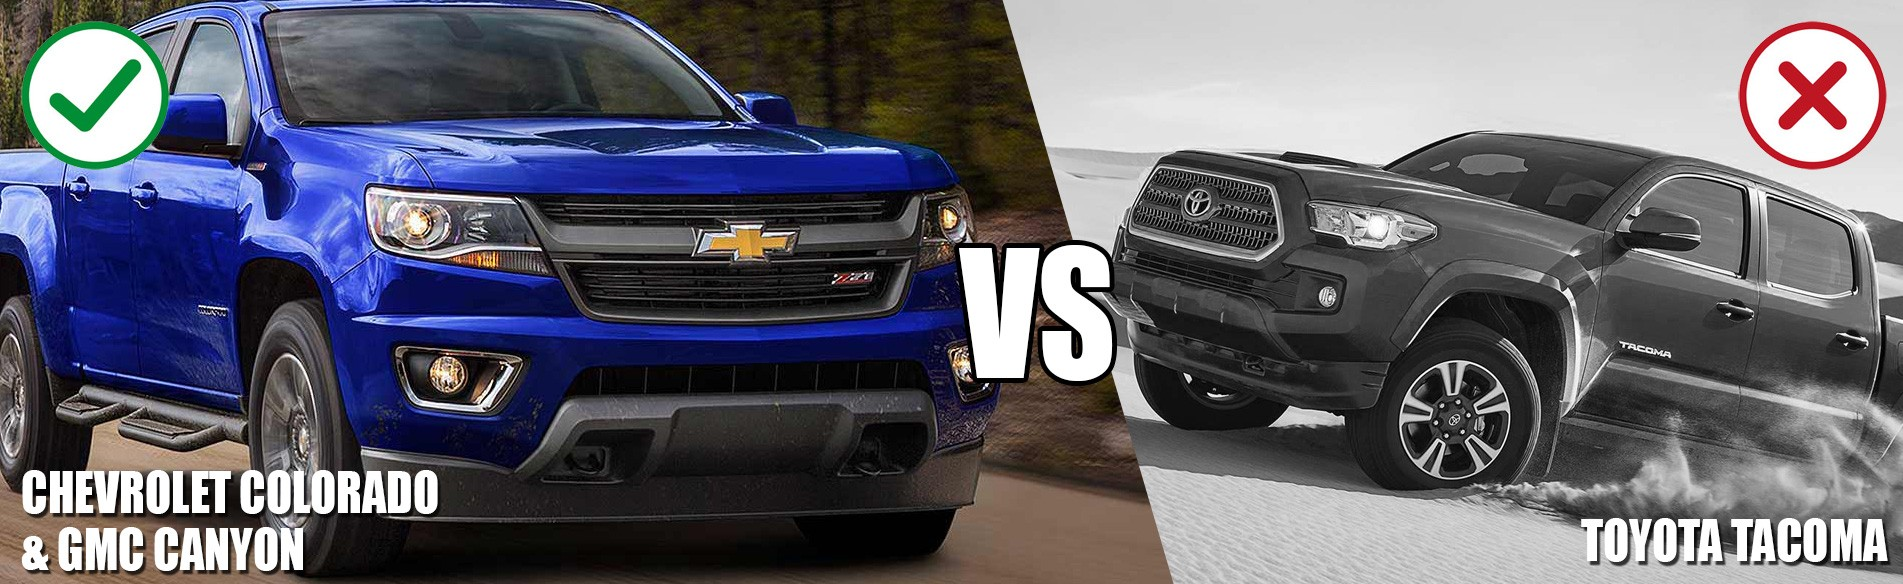 Compare the Toyota Tacoma truck vs the Chevrolet Colorado or GMC Canyon pickup truck in Georgetown and the GTA